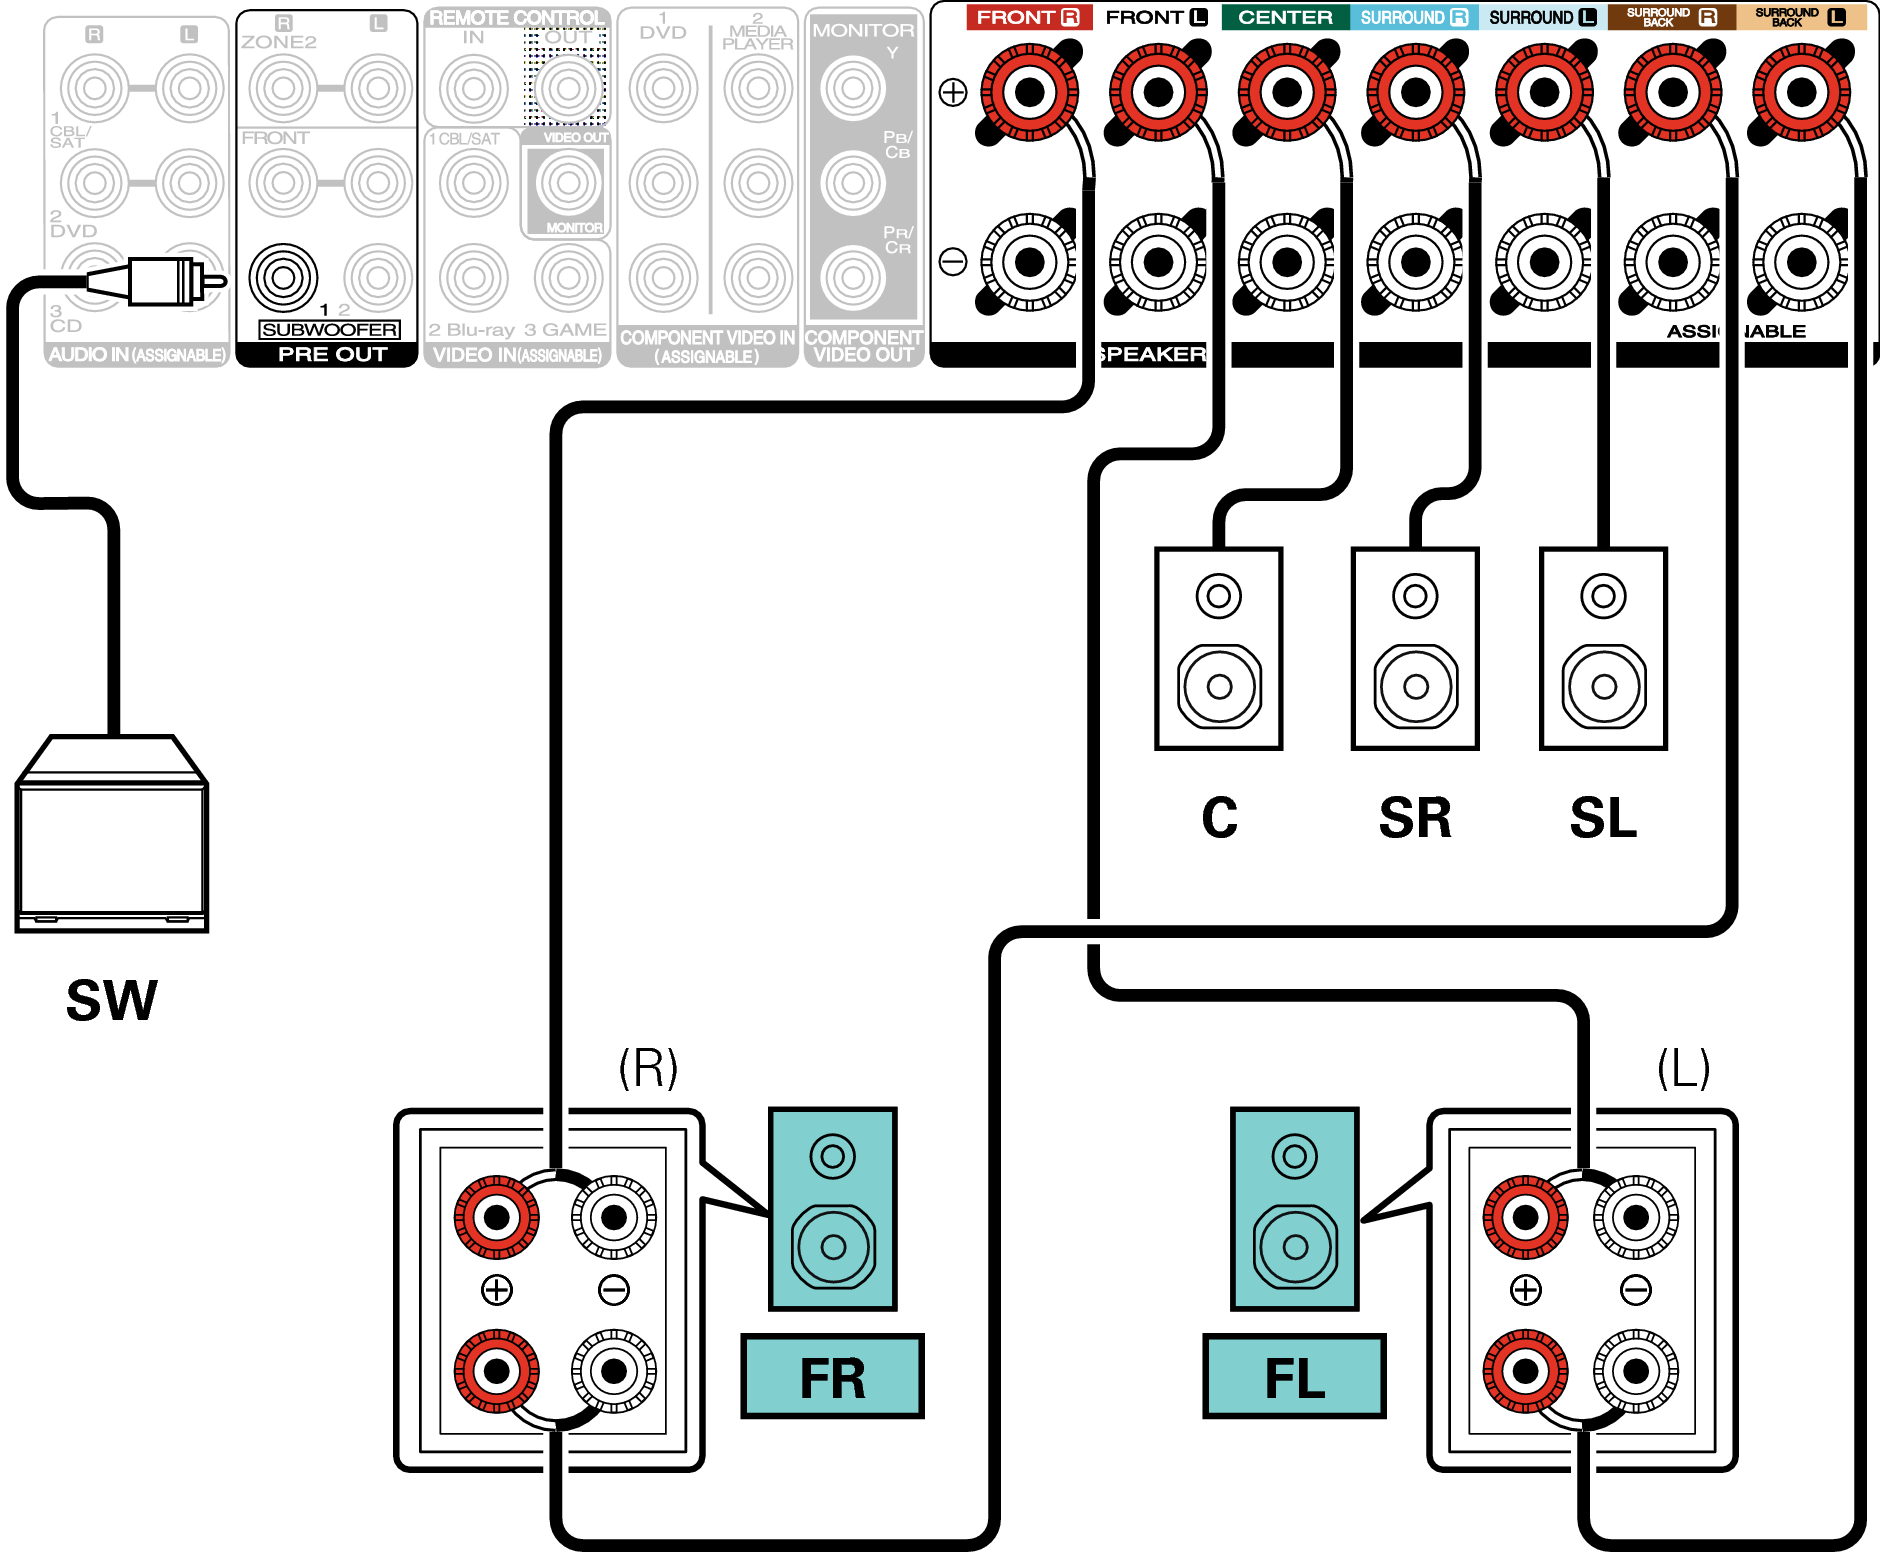 Bi Amp Diagram Schematics Wiring Connecting 5 1 Channel Speakers Connection Of Front Speaker An To